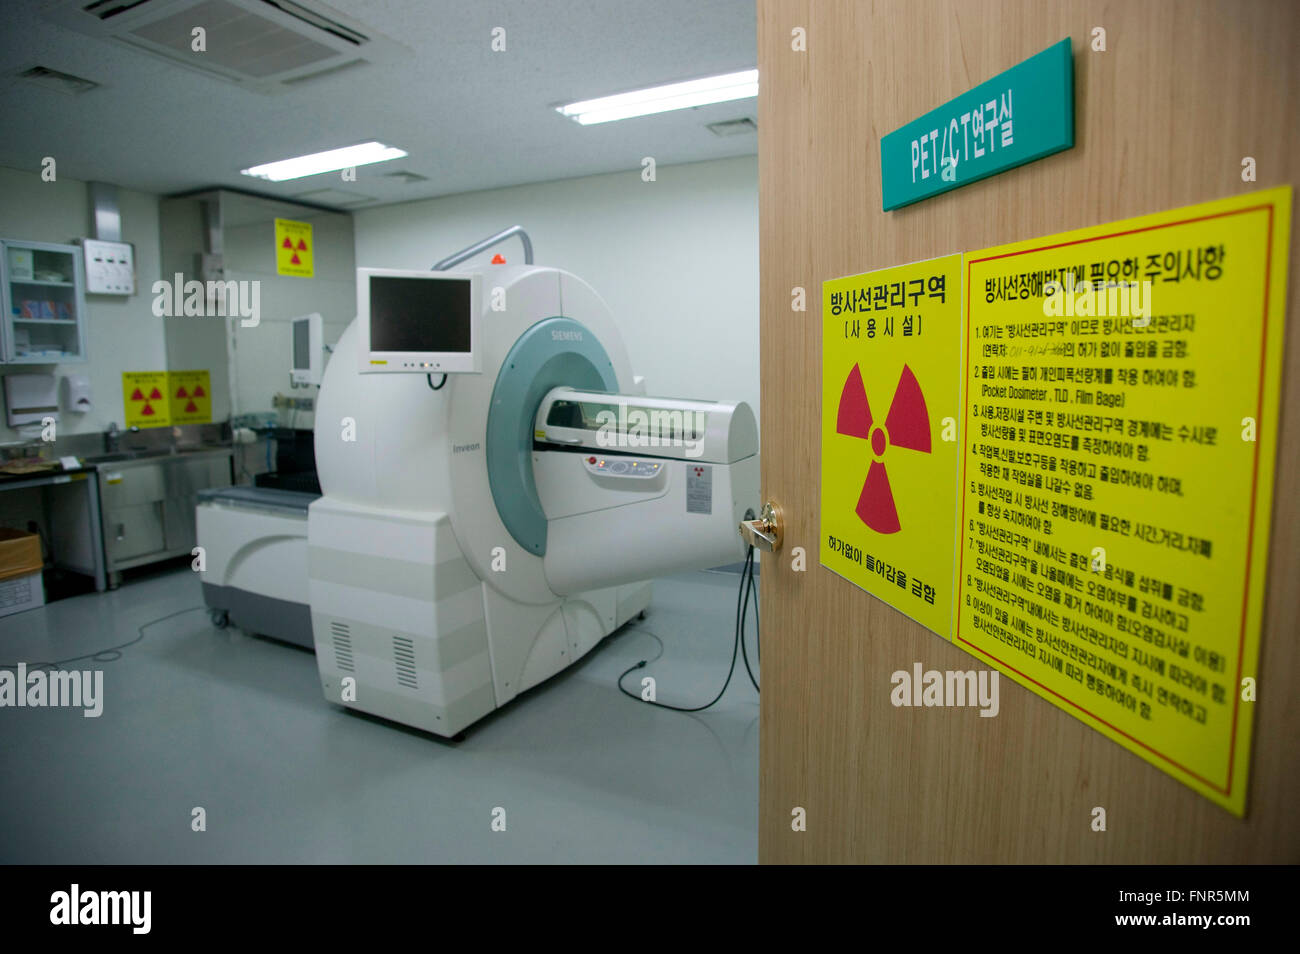 The entrance to a medical imaging research room at The Samsung Medical center, Seoul. - Stock Image